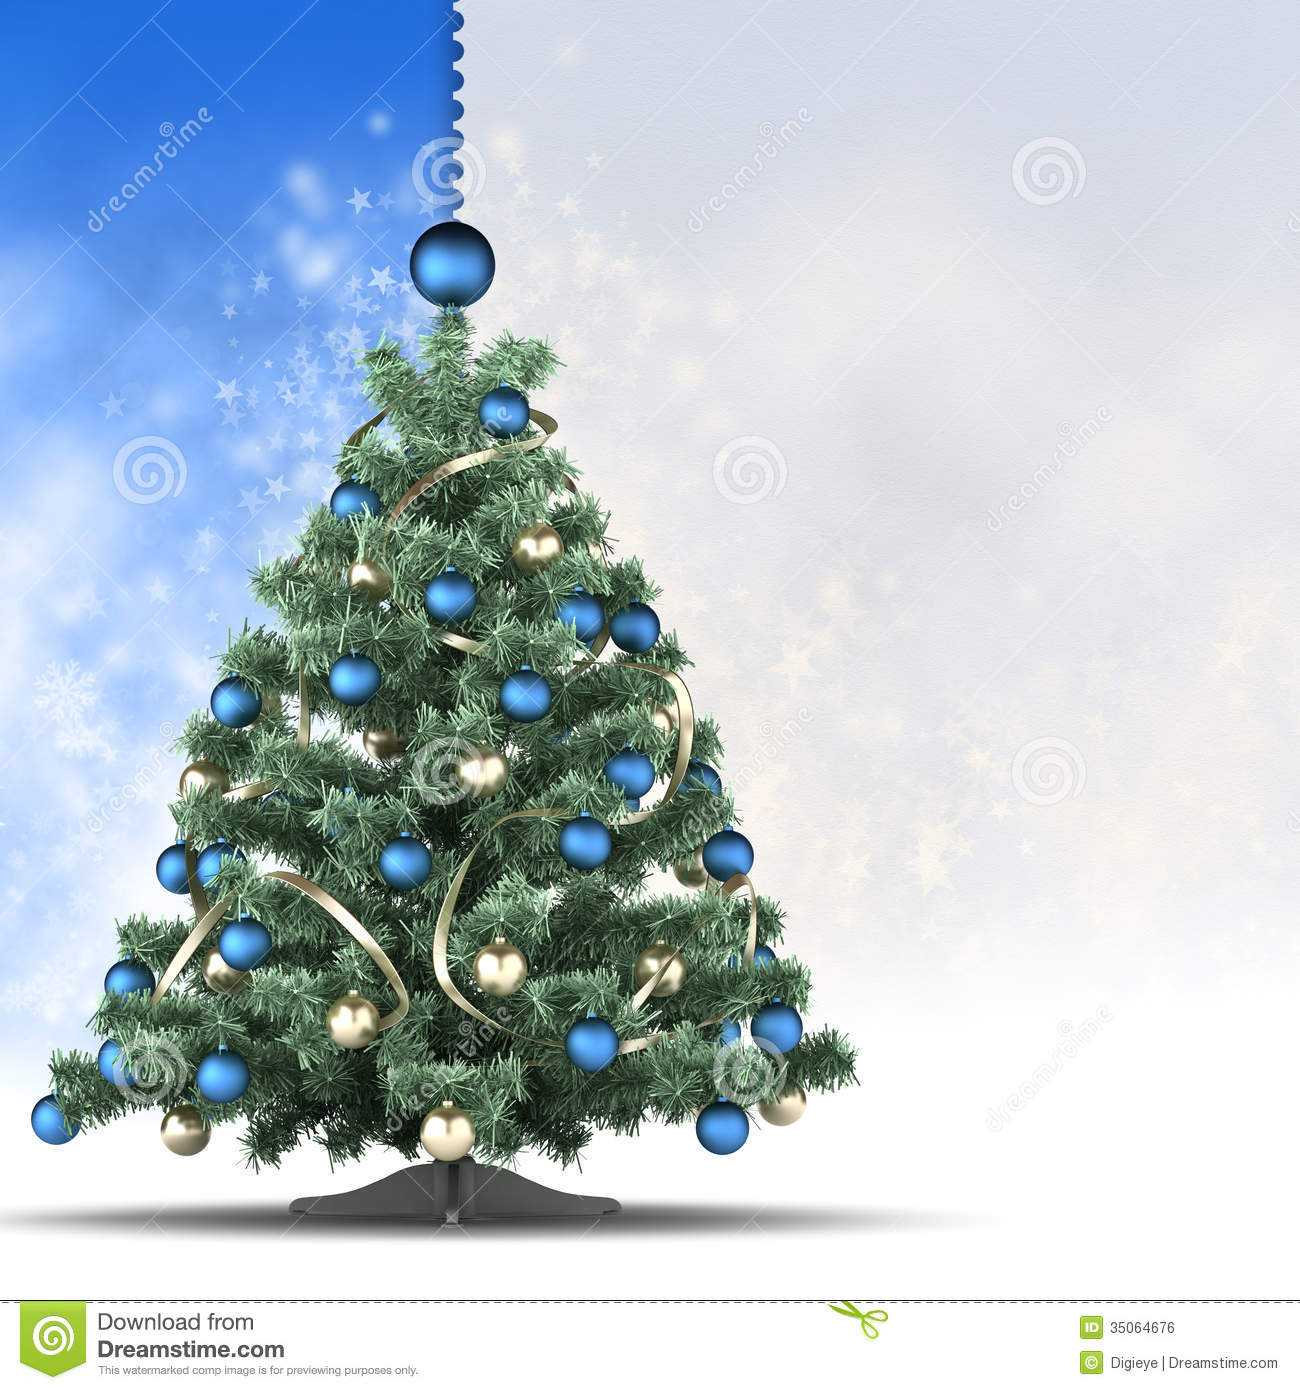 Christmas Card Template - Xmas Tree And Blank Space For Text Pertaining To Blank Christmas Card Templates Free